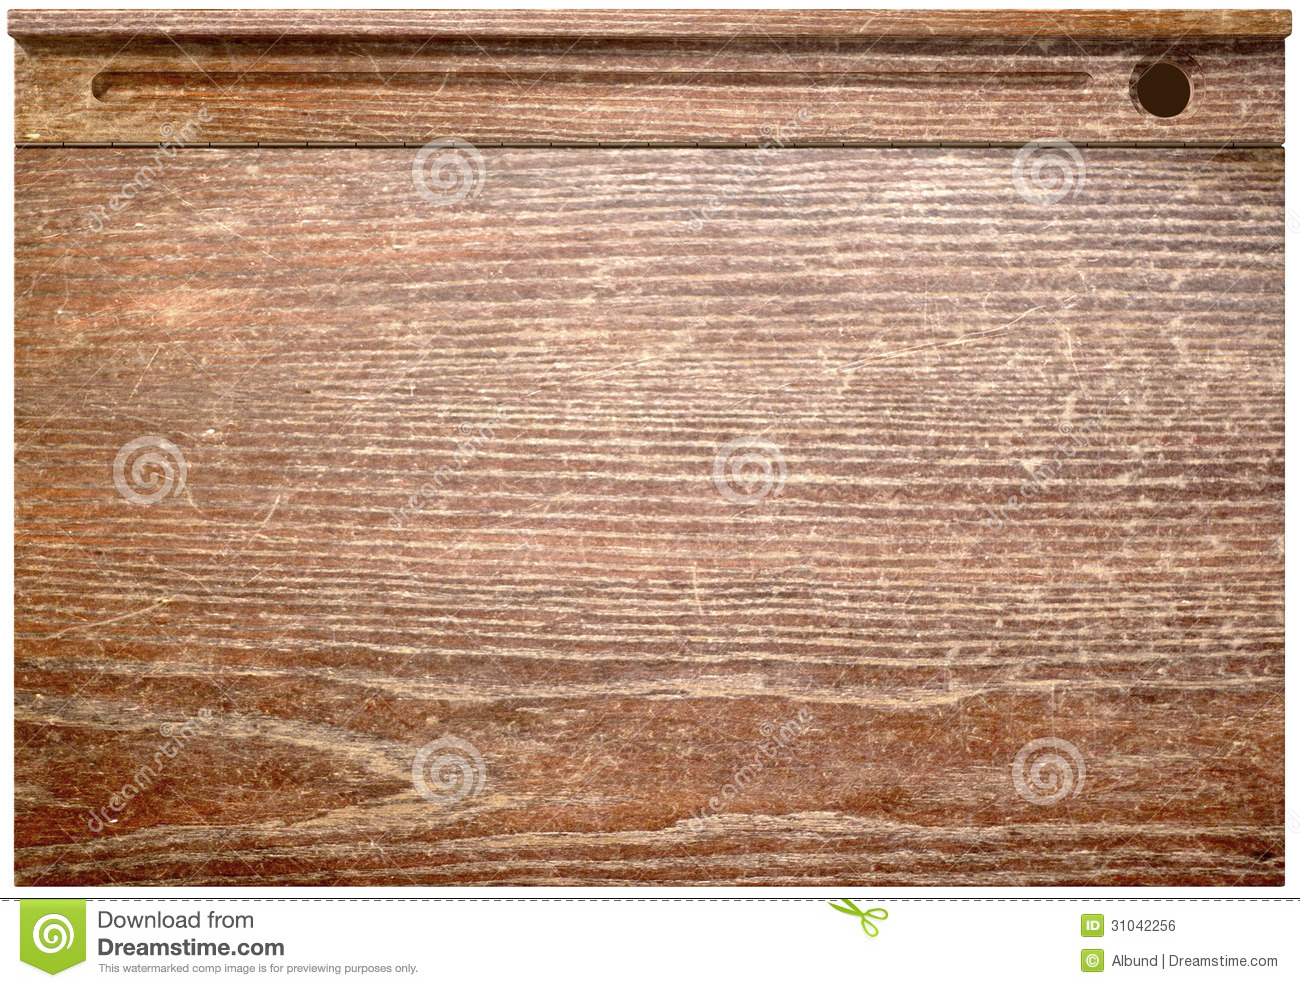 Vintage School Desk Top Royalty Free Stock Image - Image: 31042256